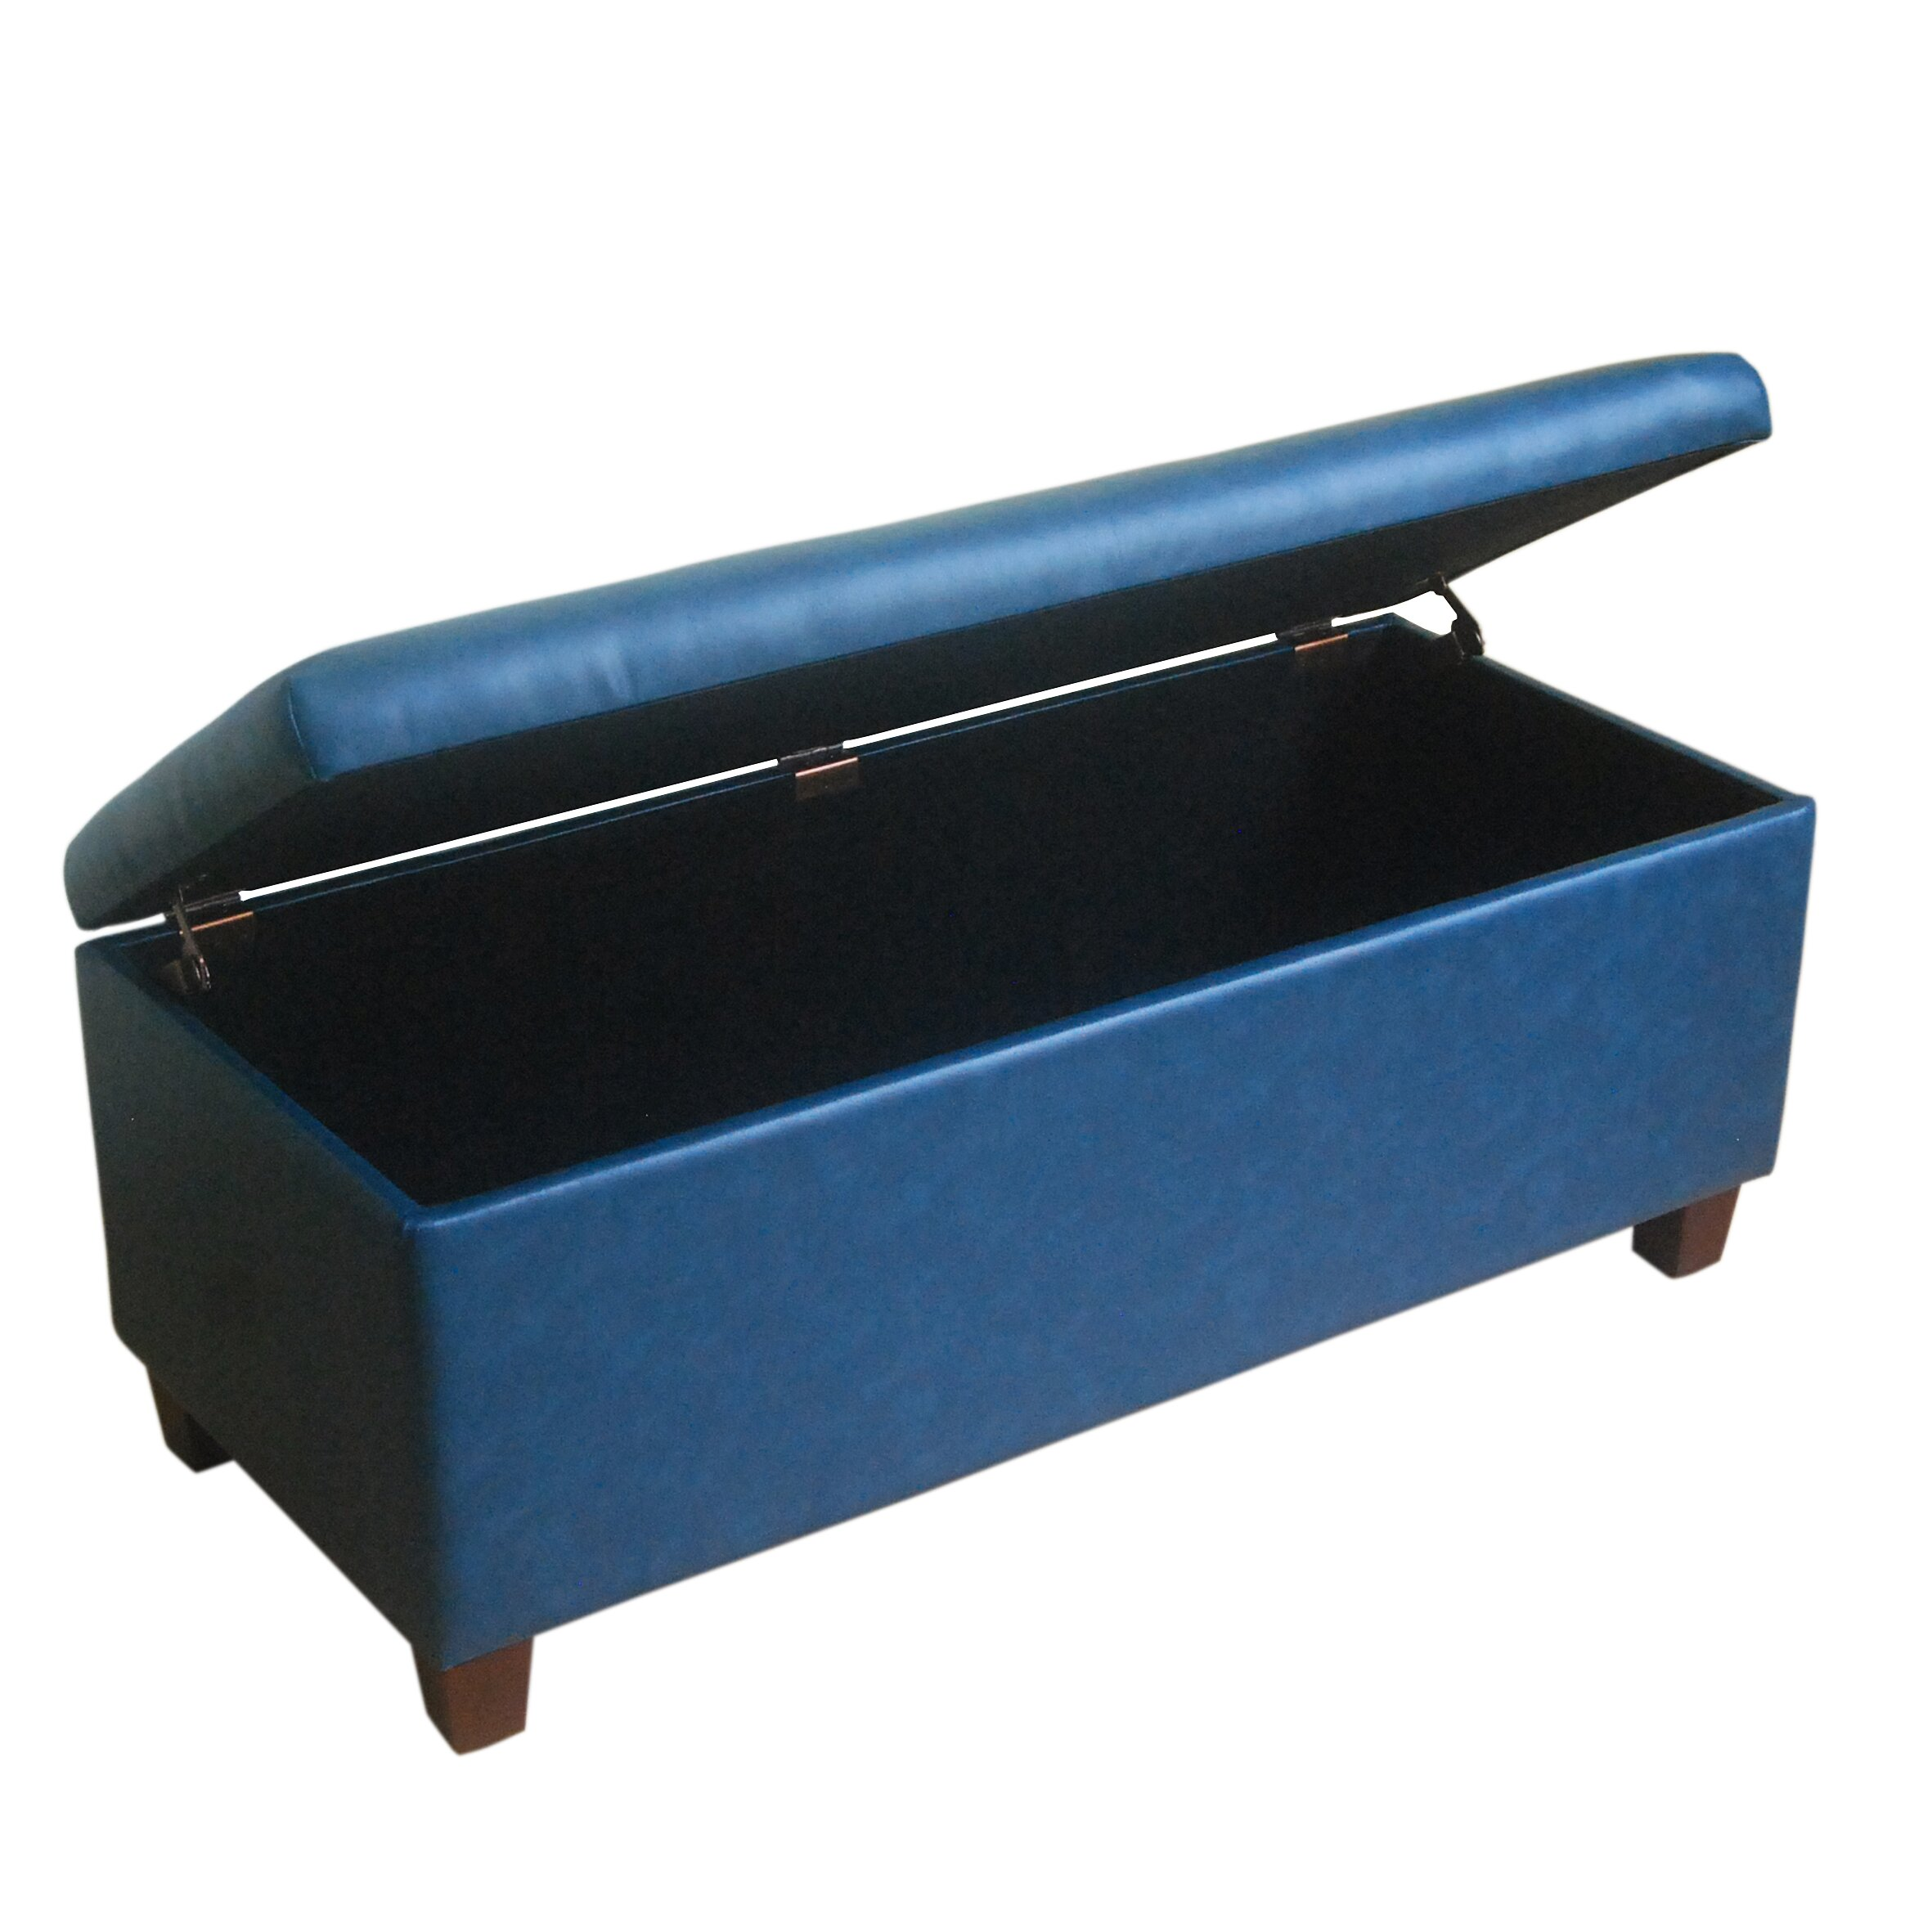 Homepop Upholstered Storage Bench Reviews Wayfair Supply